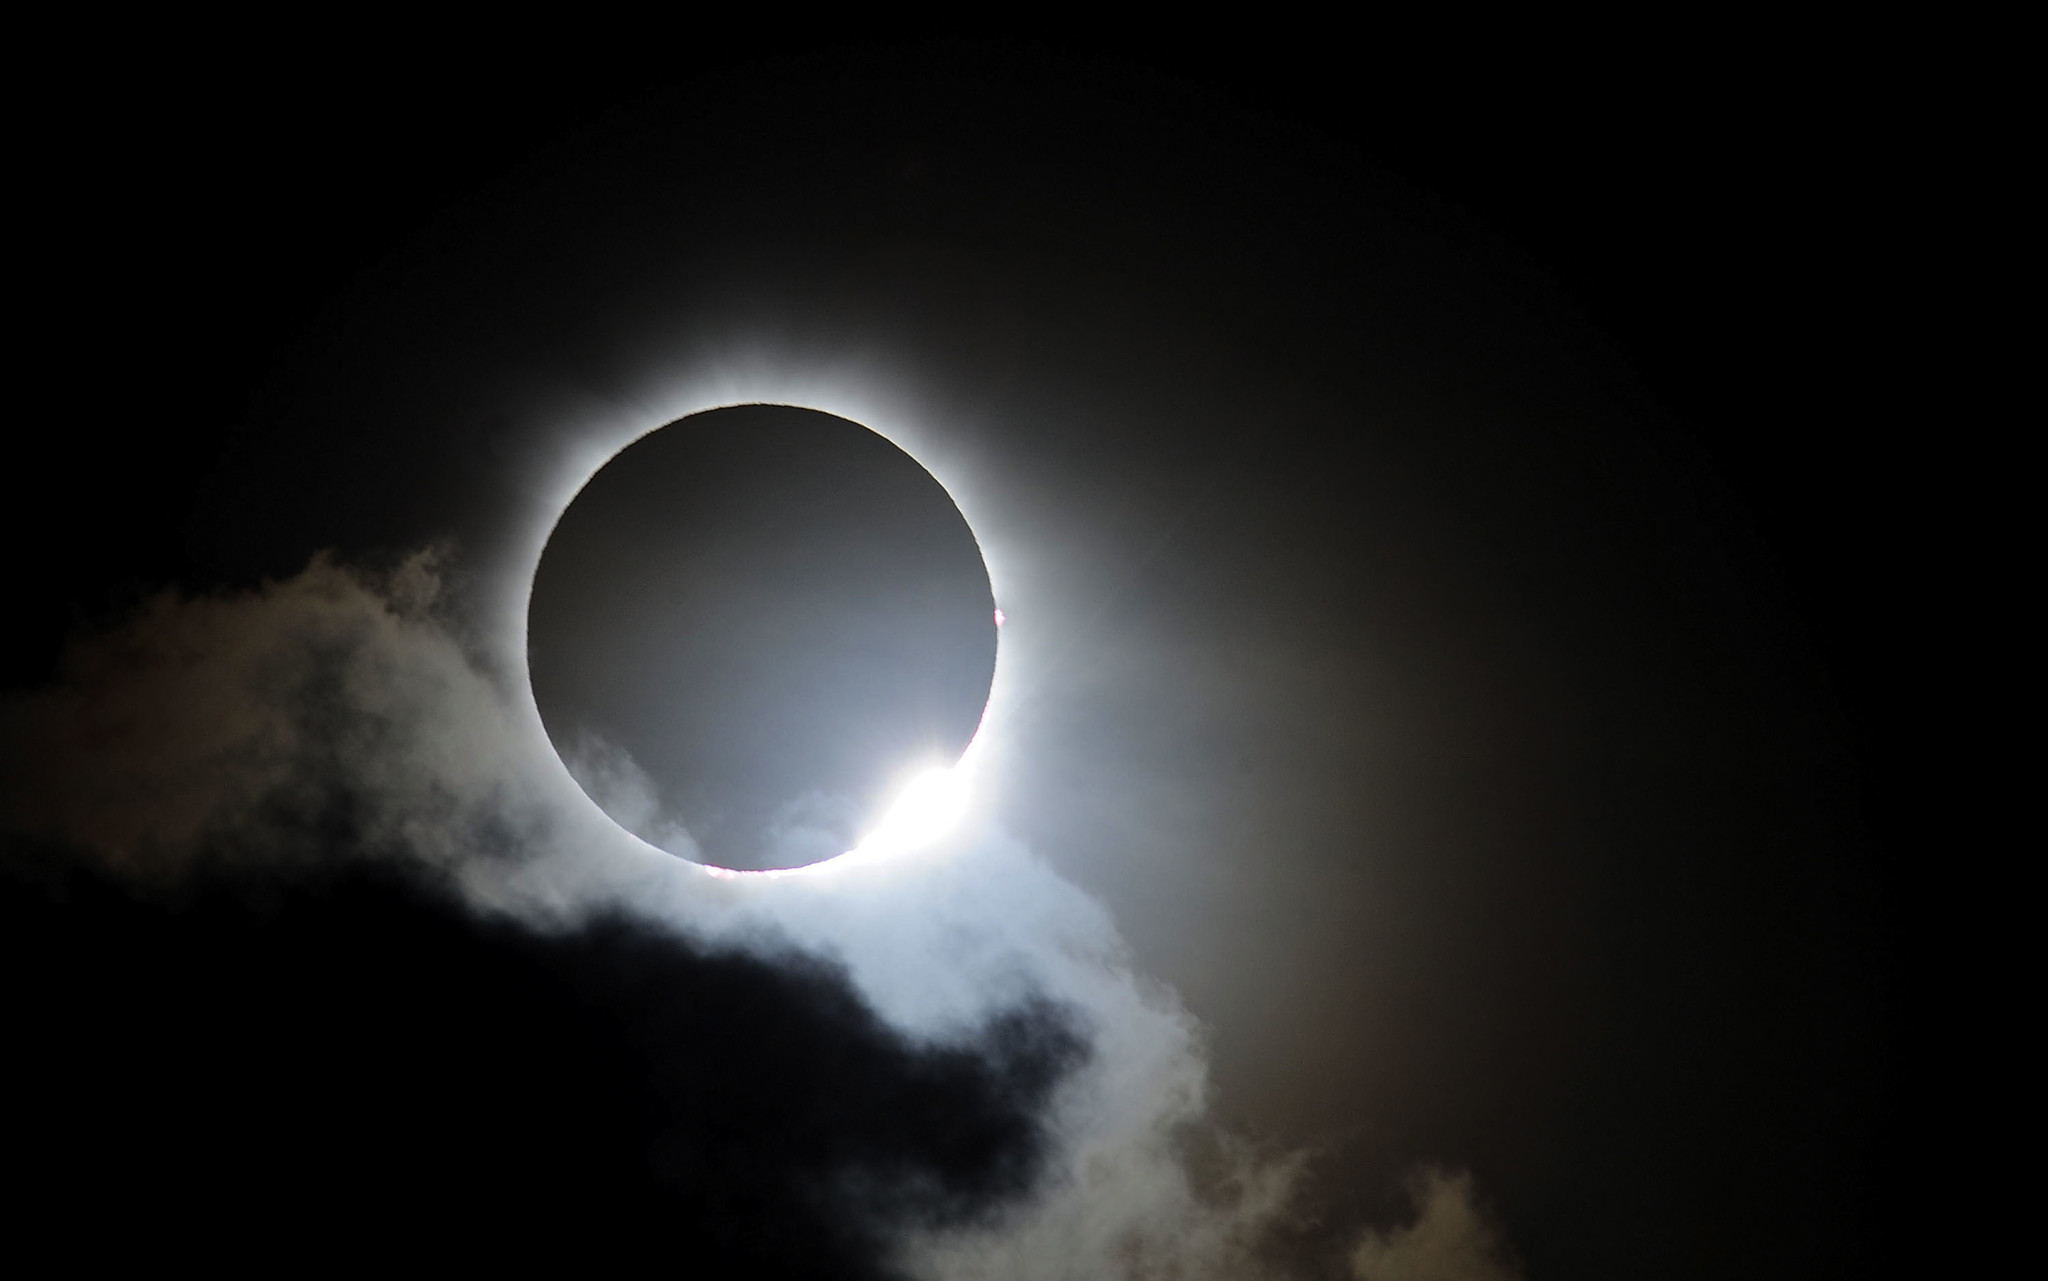 Near totality is seen during the solar eclipse in Palm Cove, Australia, on Nov. 14, 2012.